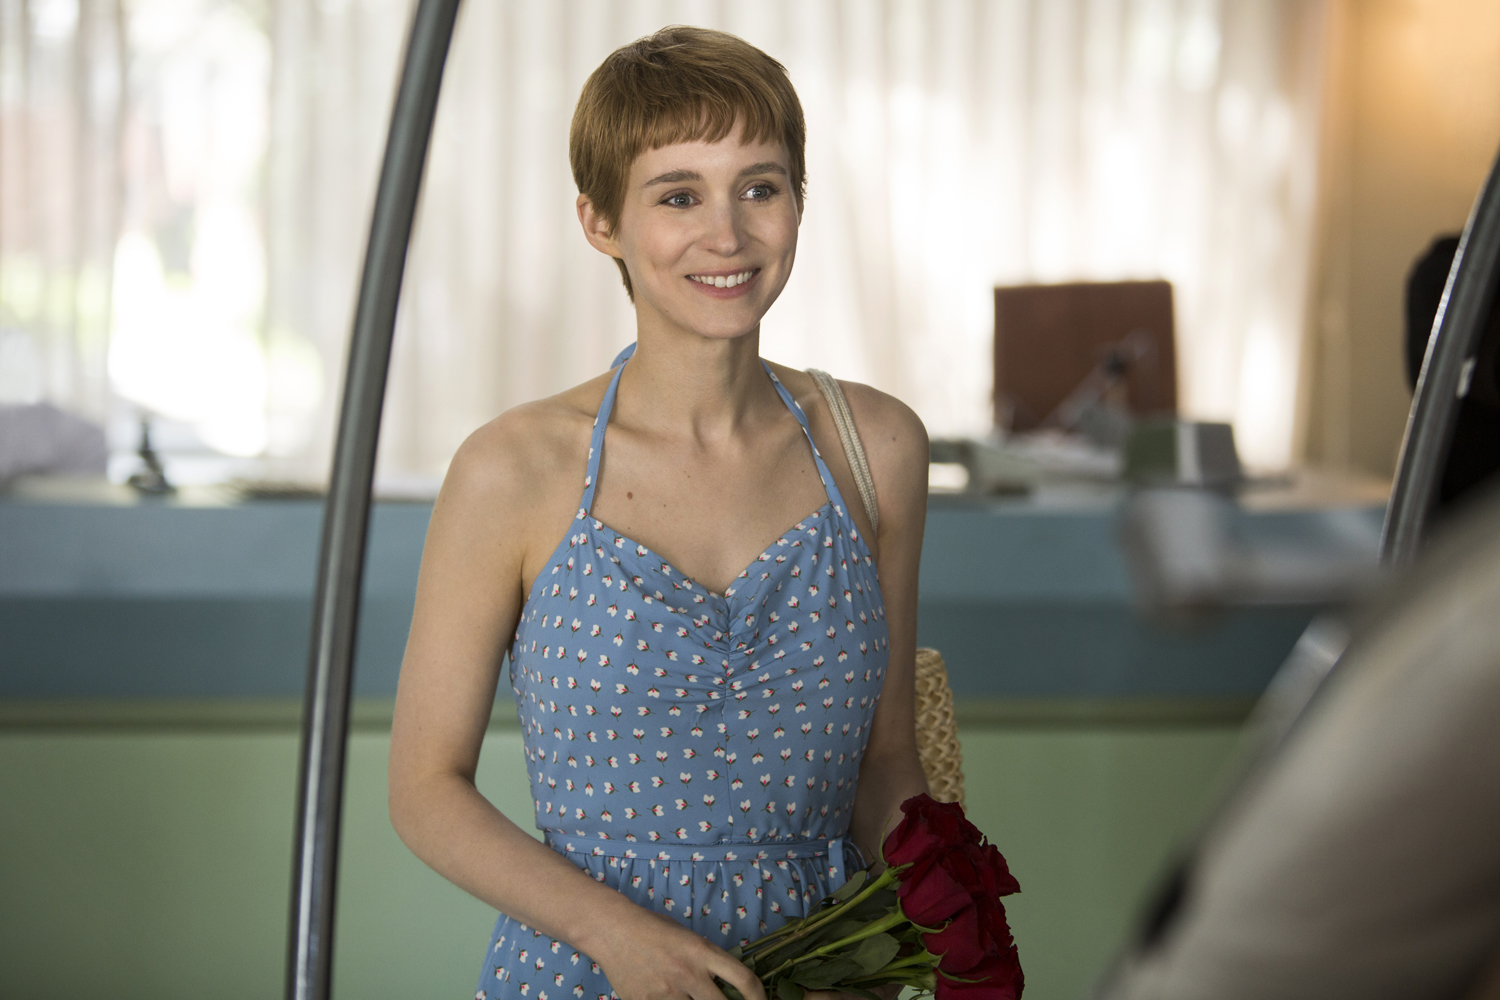 Rooney Mara stars as Annu in DON'T WORRY, HE WON'T GET FAR ON FOOT.